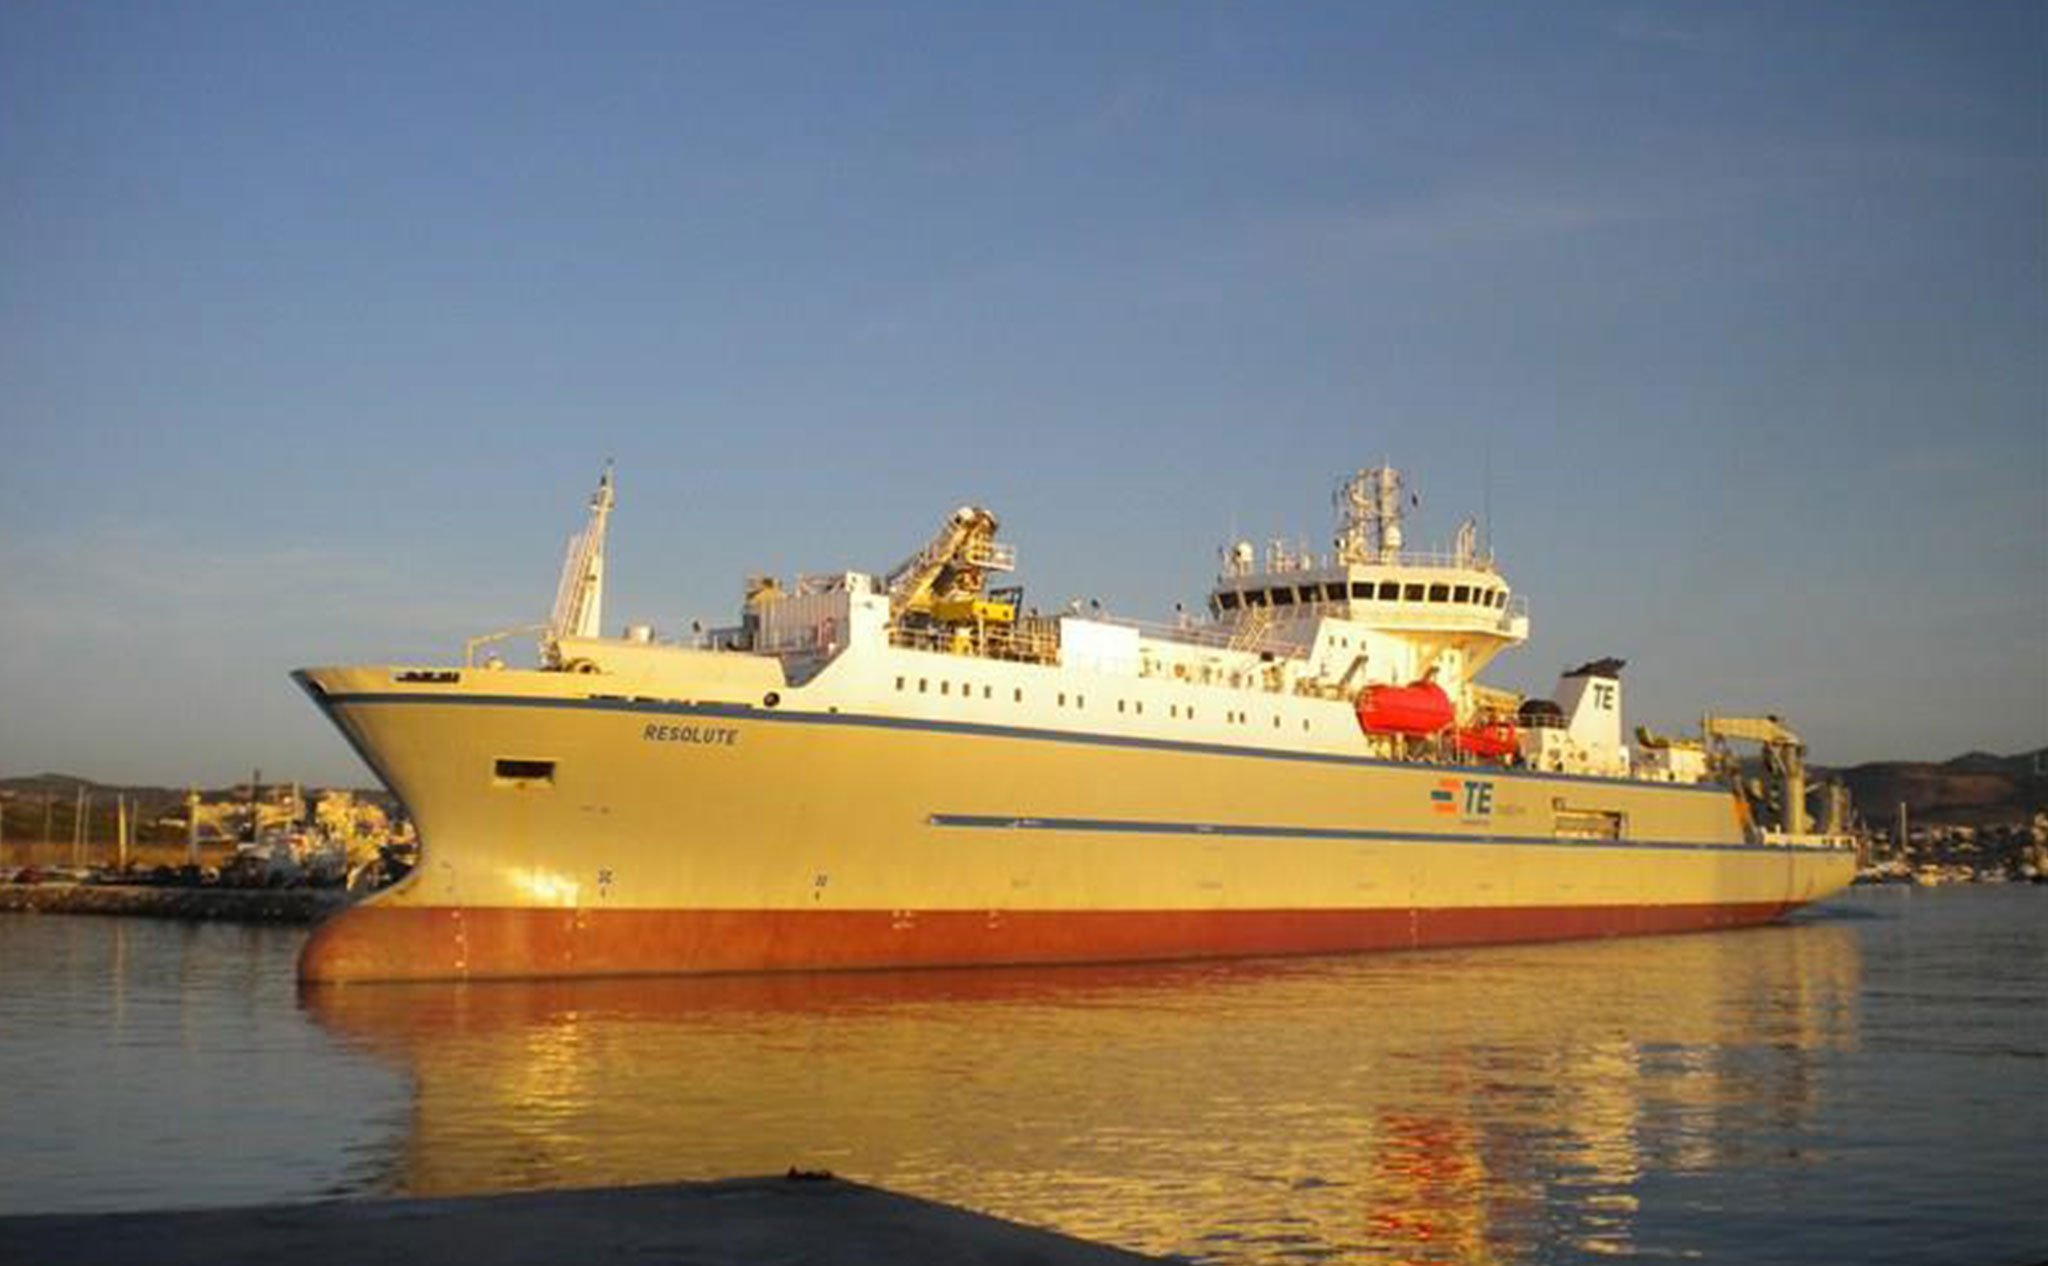 The cable ship David Costa is currently working on, the «Resolute»